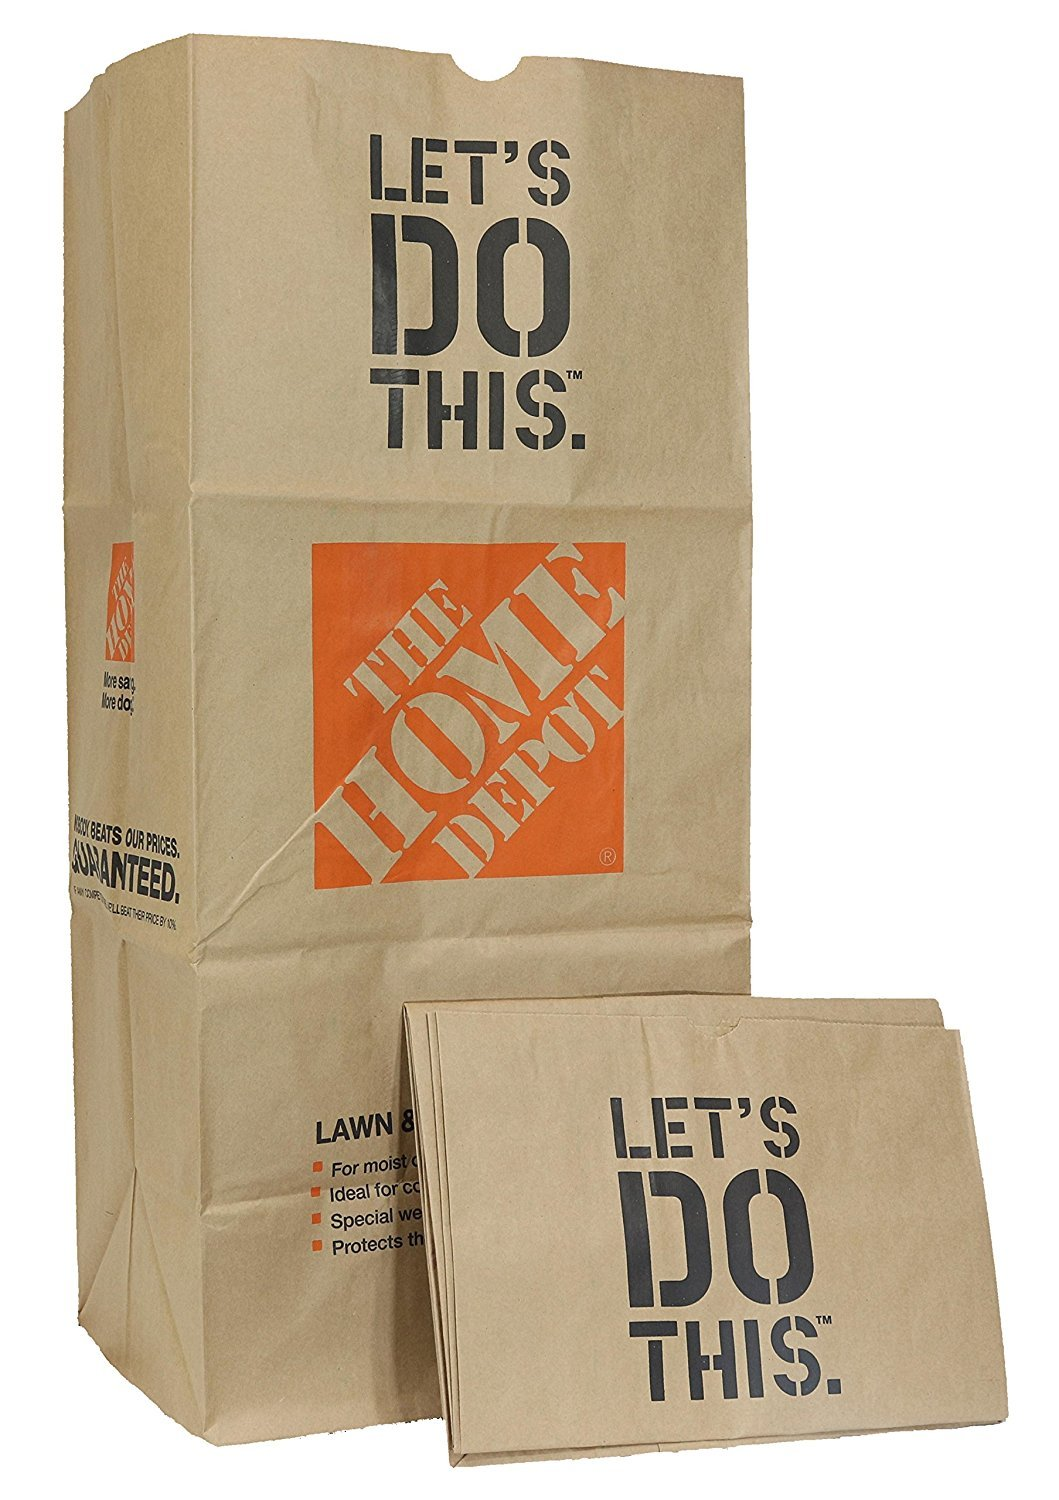 Home Depot Heavy Duty Brown Paper 30 Gallon Lawn and Refuse Bags for Home and Garden (70 Lawn Bags) by Home Depot